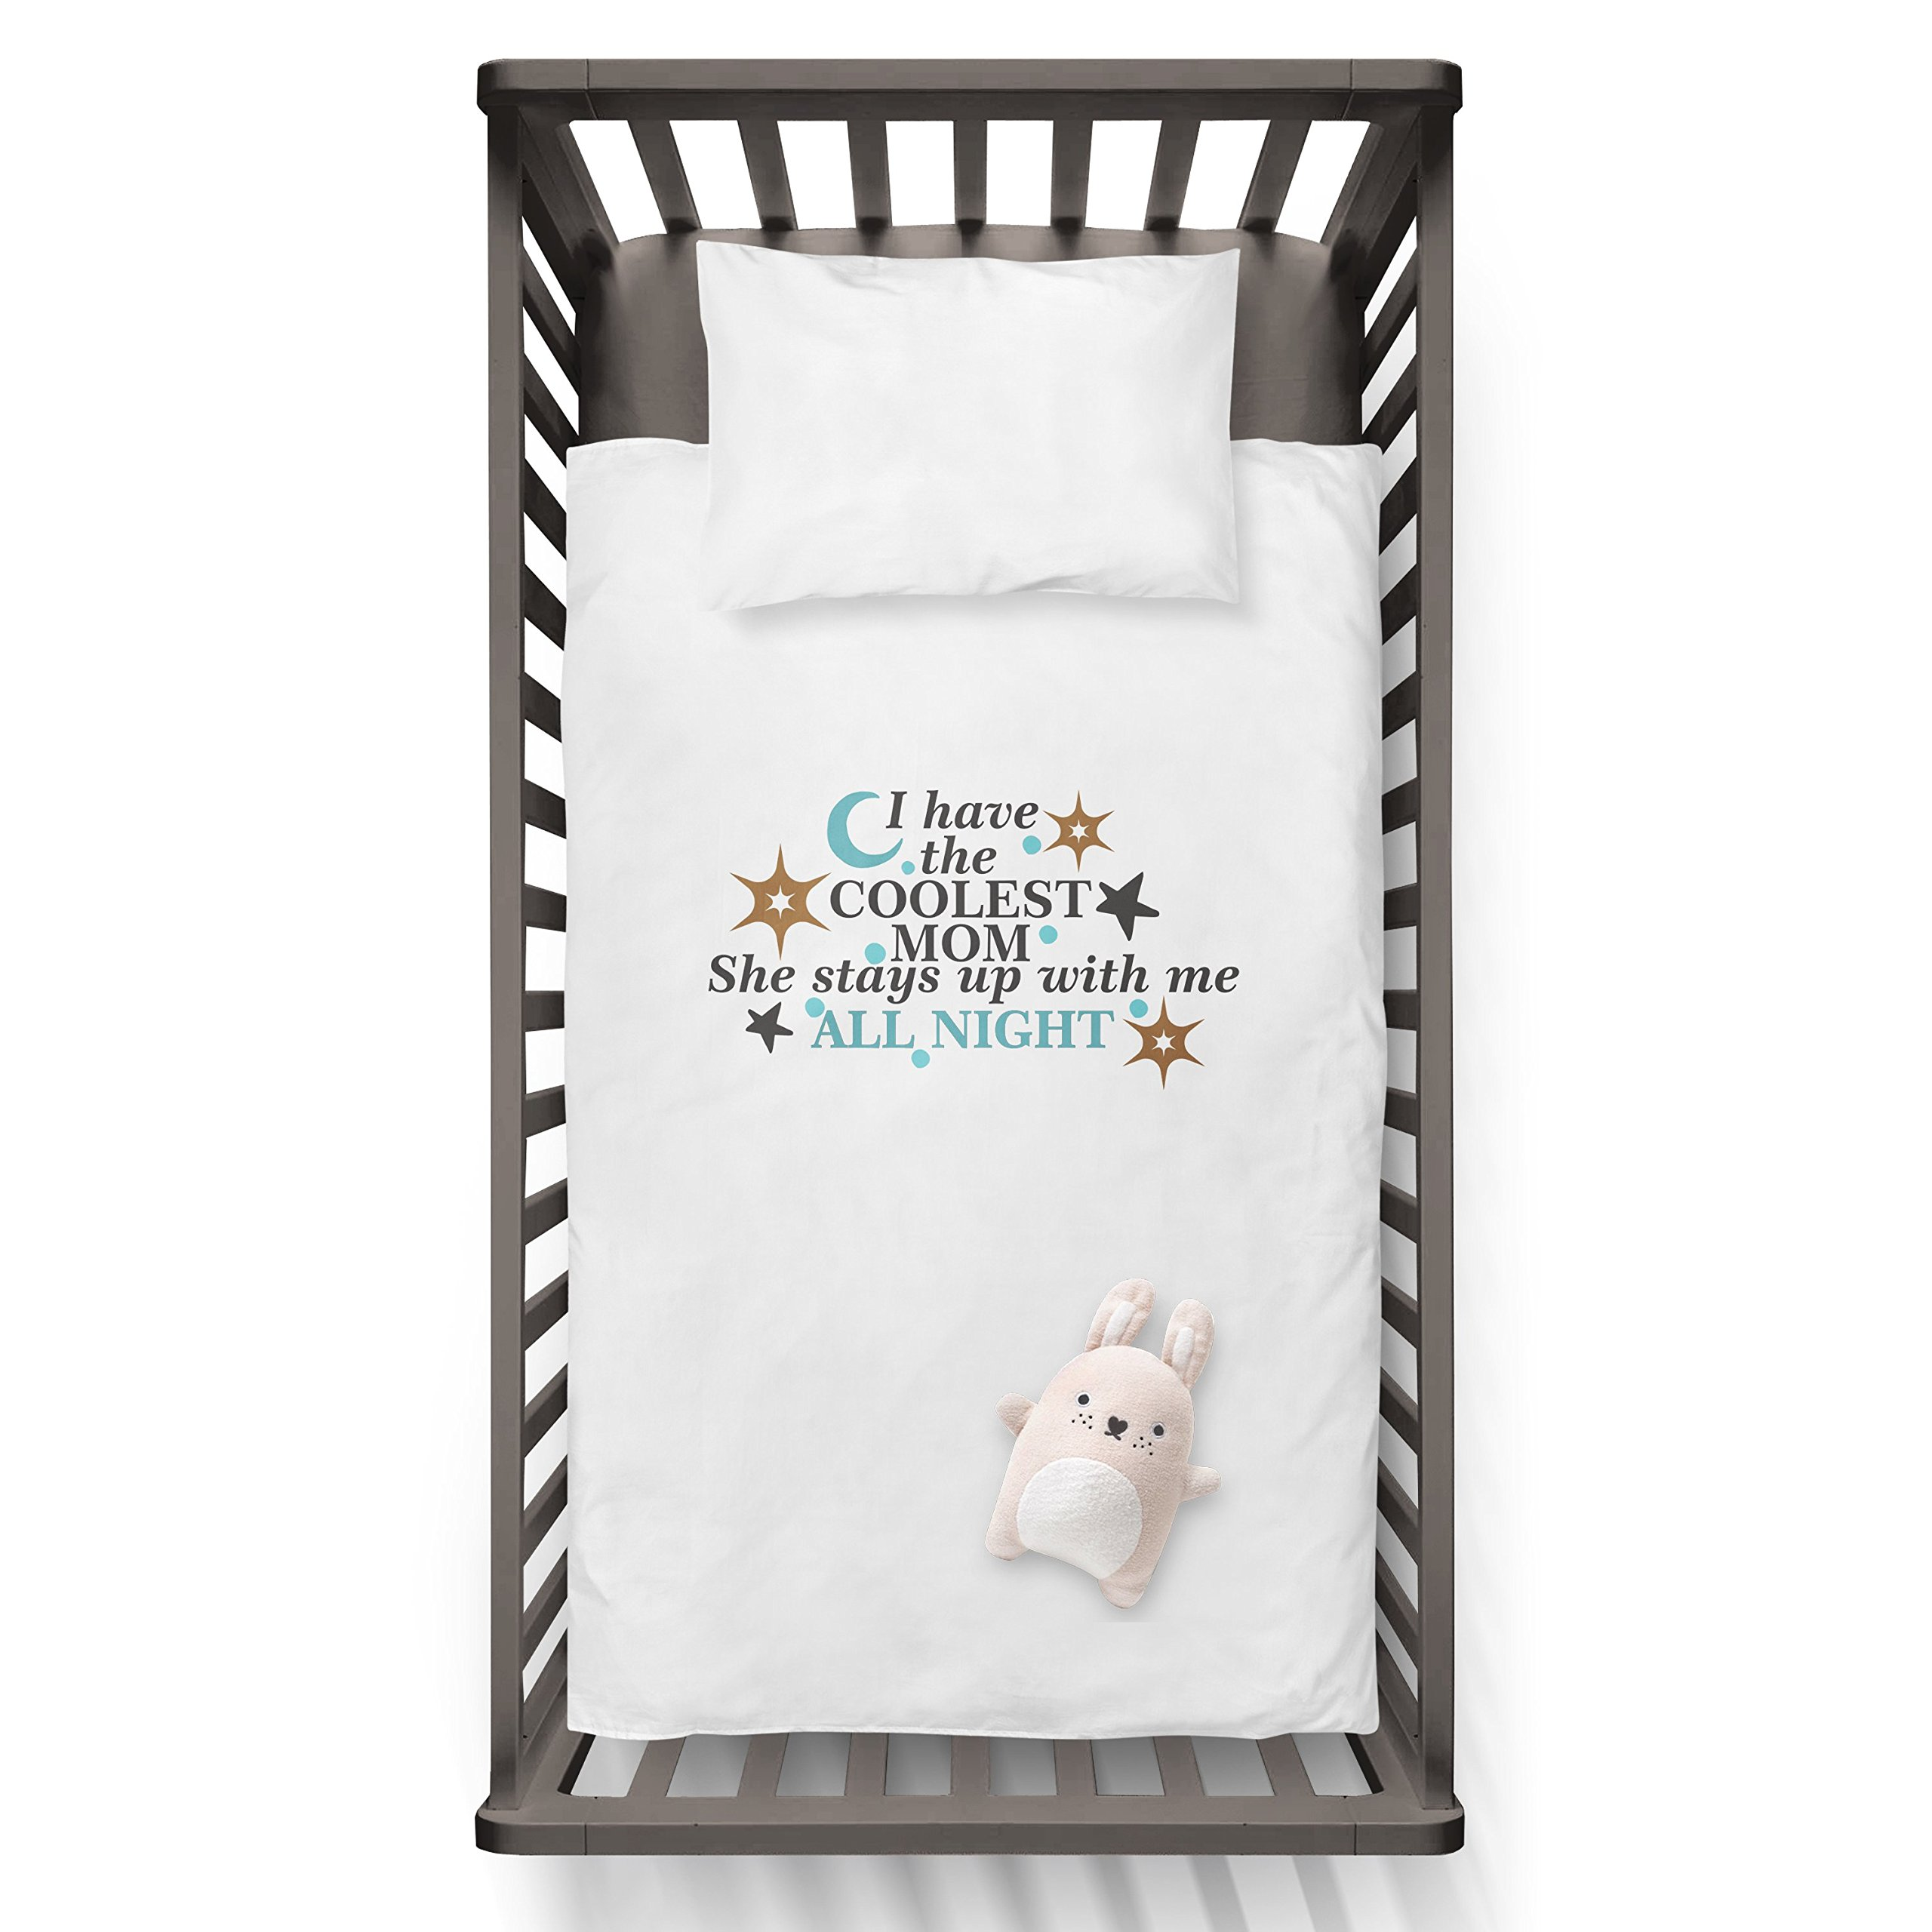 I Have The Coolest MOM She Stay Up With Me ALL NIGHT Funny Humor Hip Baby Duvet /Pillow set,Toddler Duvet,Oeko-Tex,Personalized duvet and pillow,Oraganic,gift